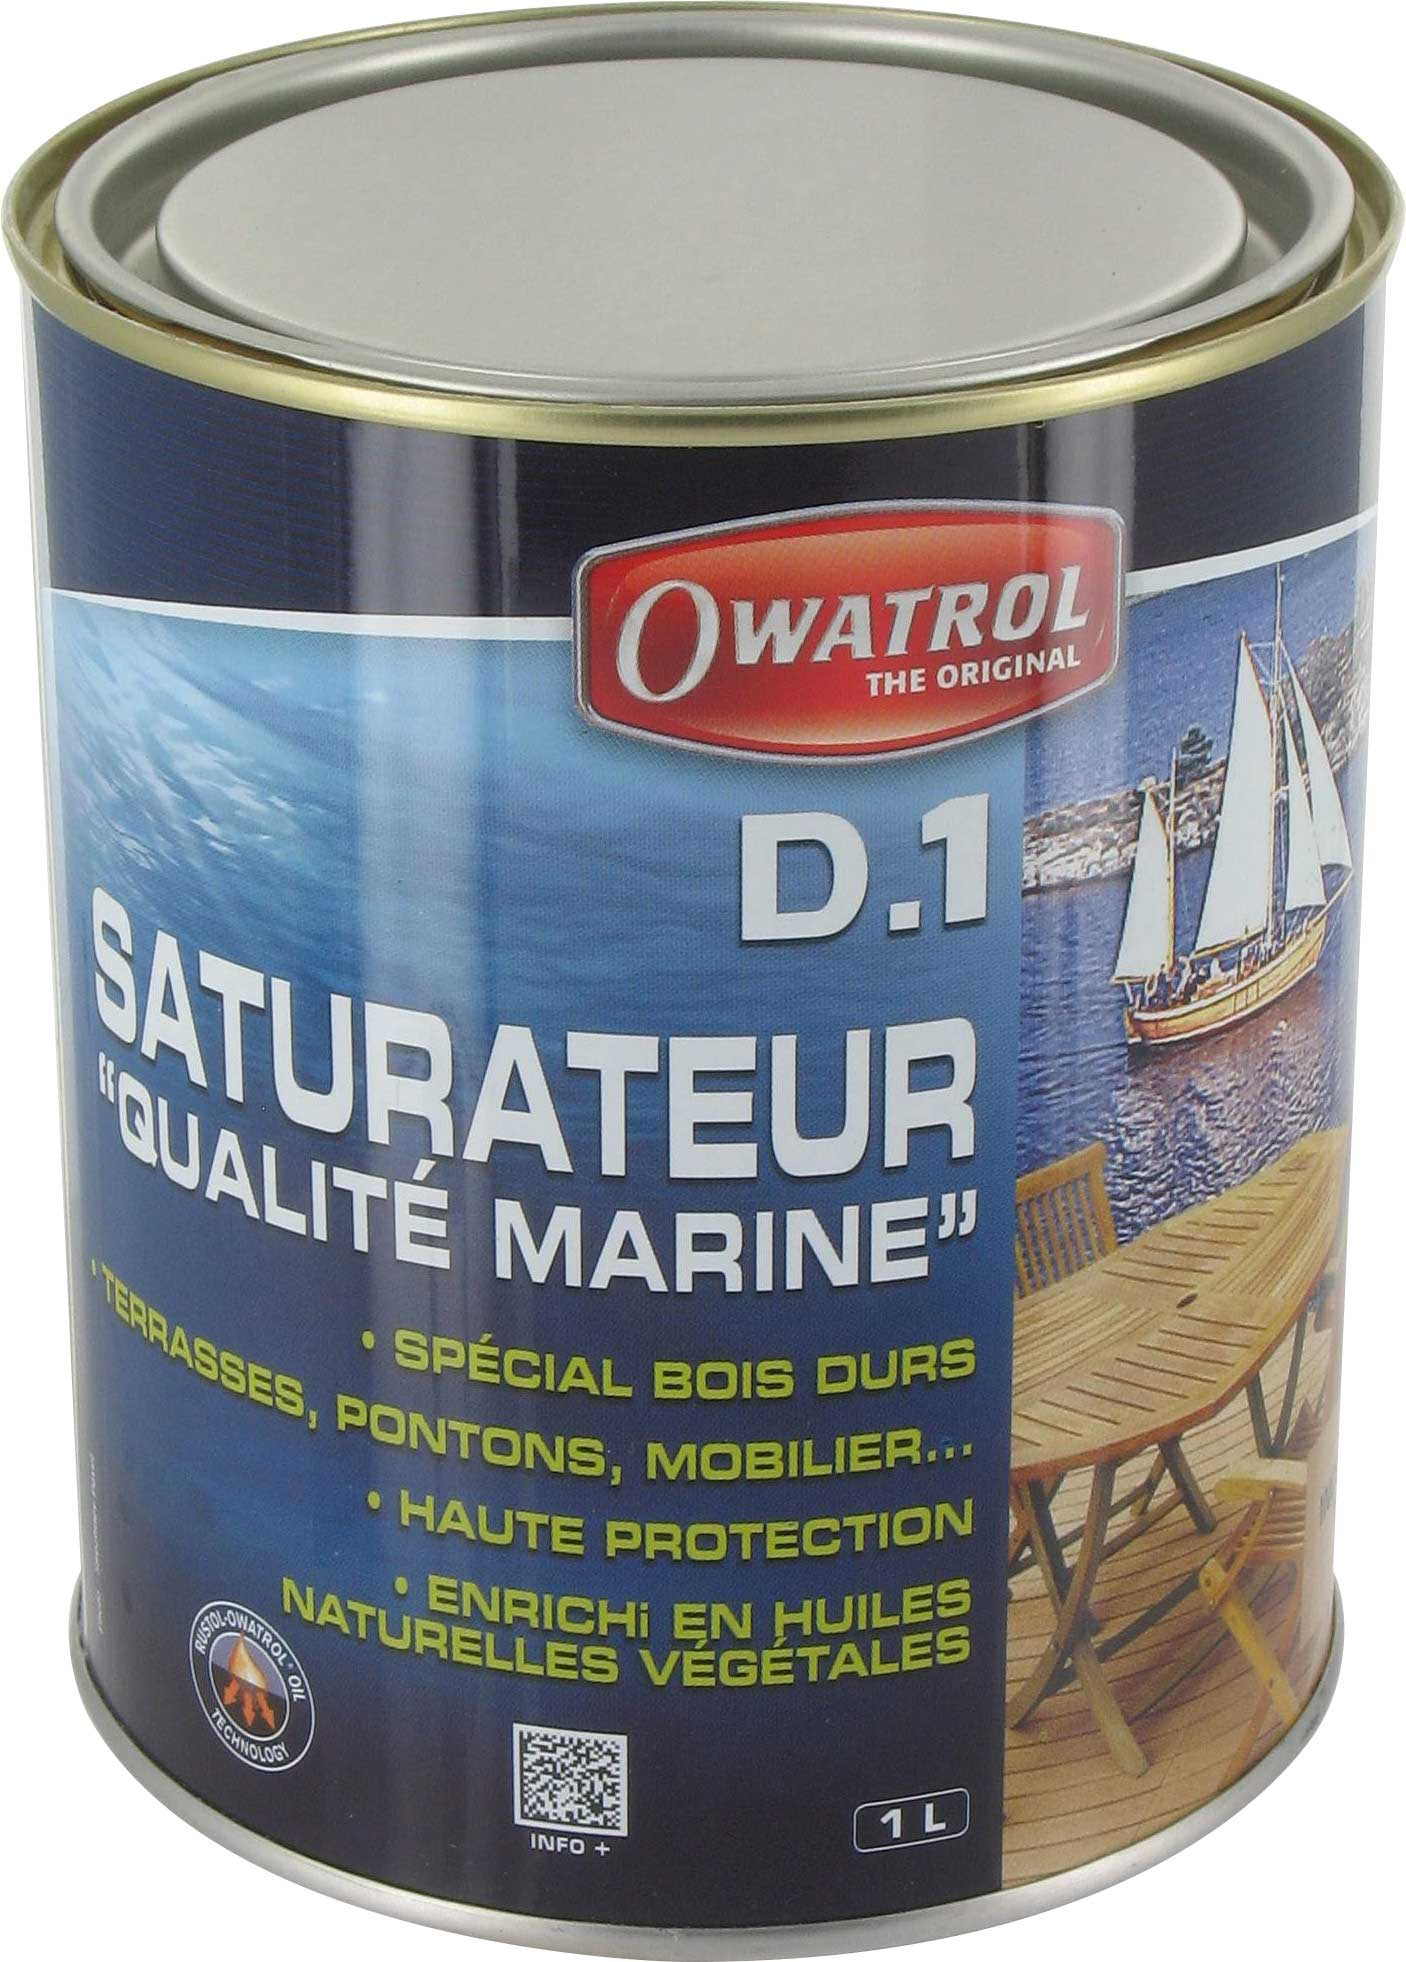 Saturateur bois tropicaux Durieu